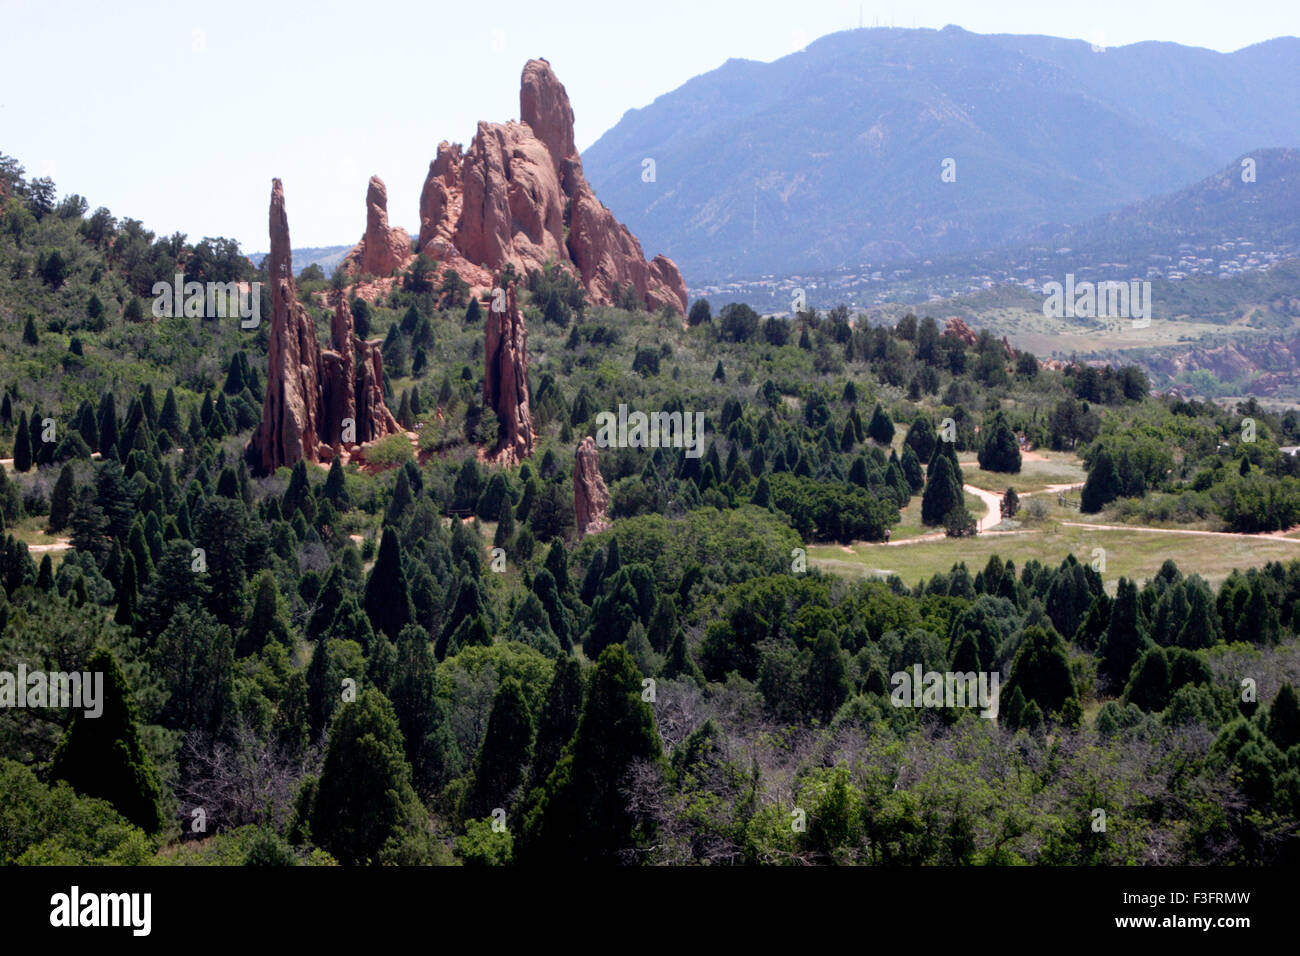 Scenic view of Garden of Gods at Colorado ; U.S.A. United States of America - Stock Image